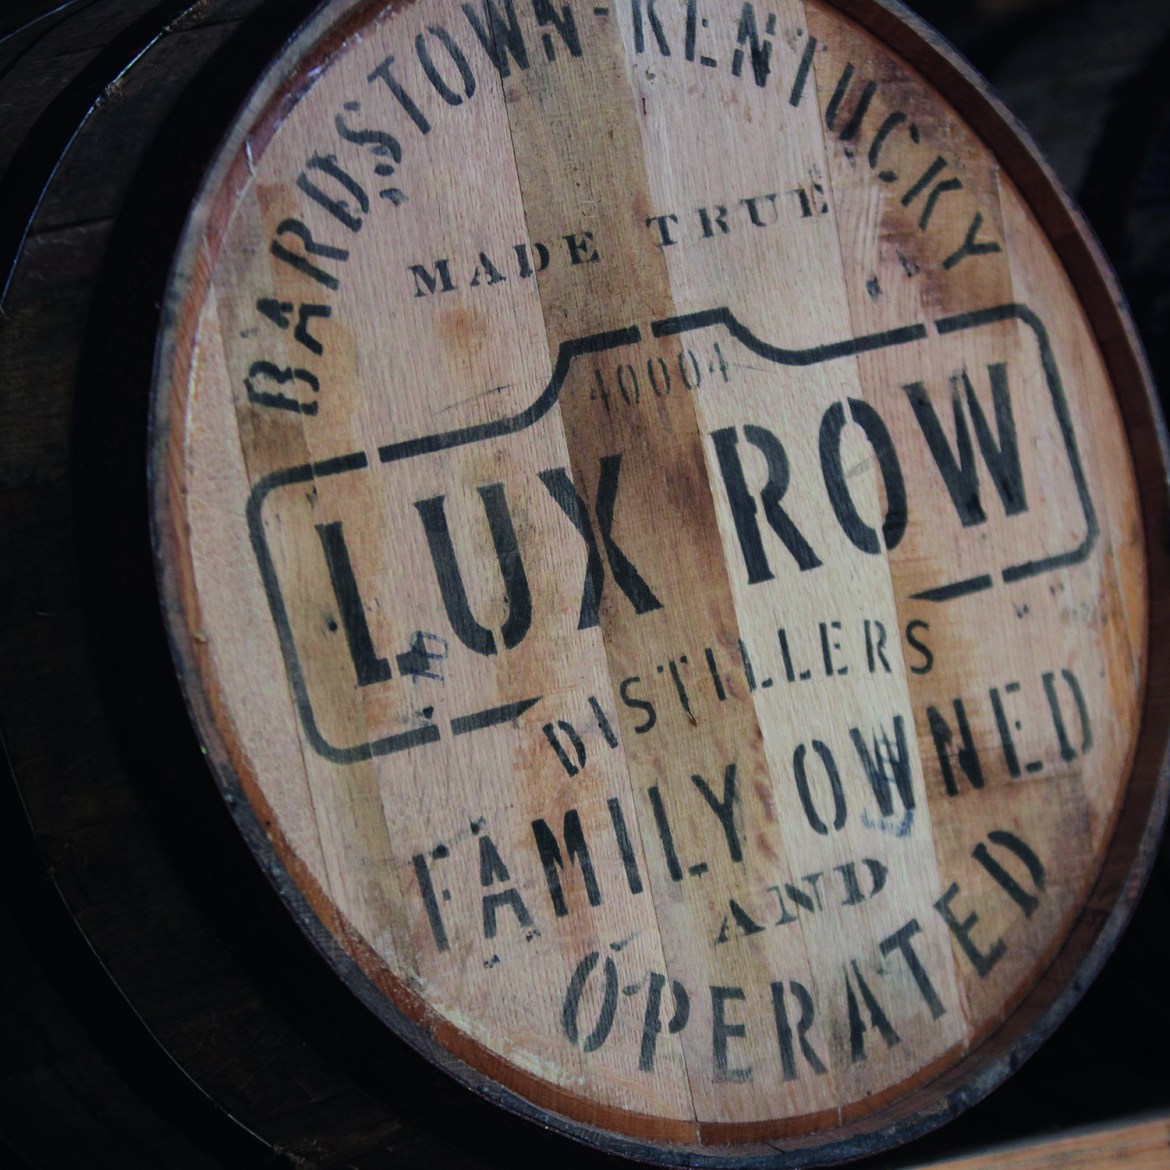 LUXROW Barrel Square - Lux Row